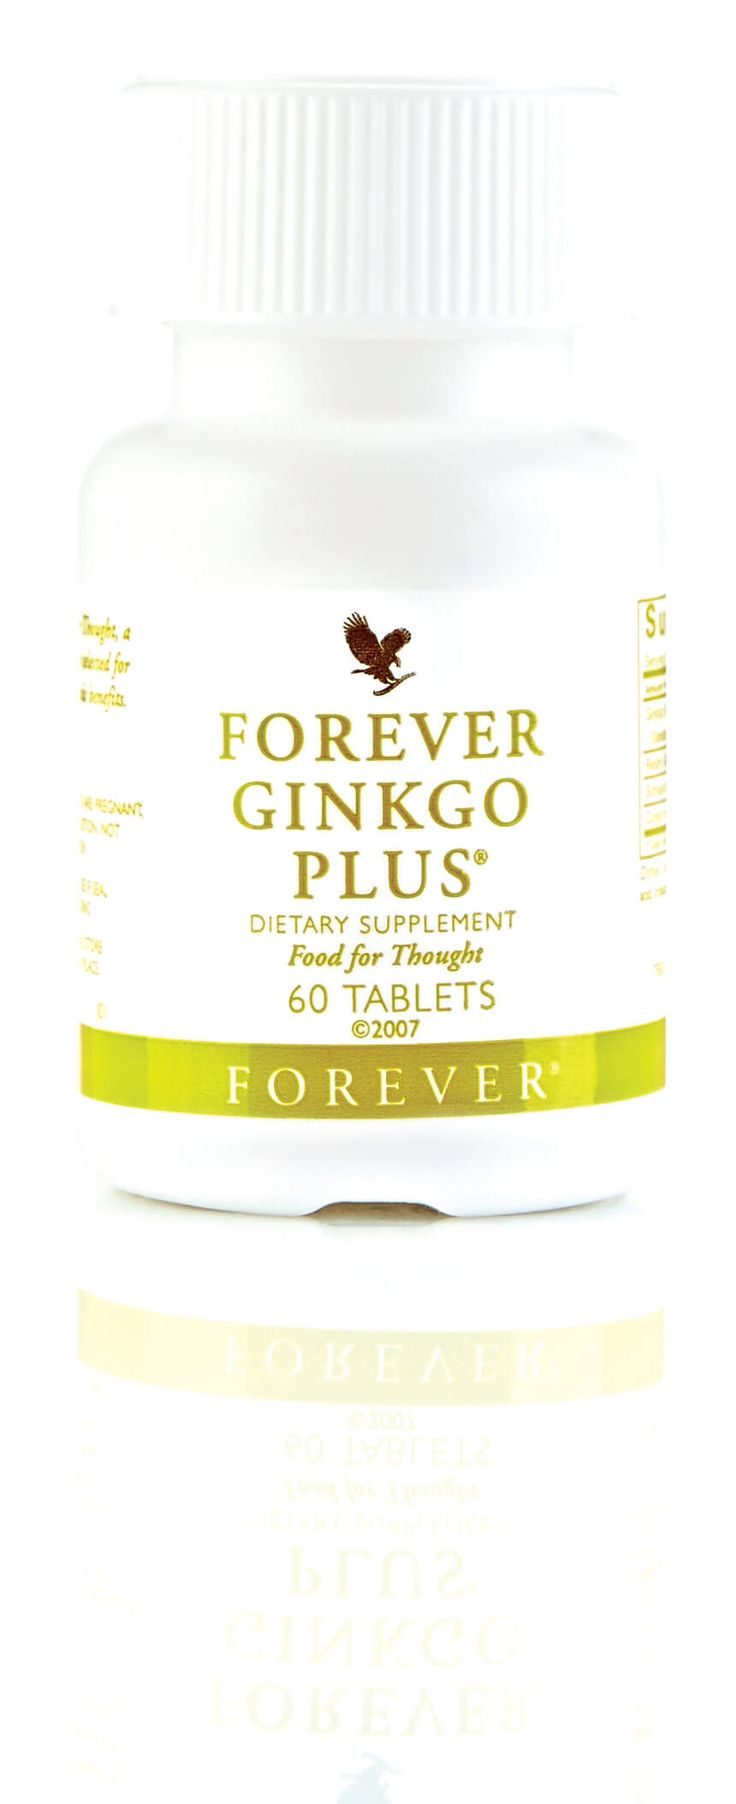 Want to testing out something new? Try Forever Living's brilliant range of #supplements! http://link.flp.social/NBOPeH